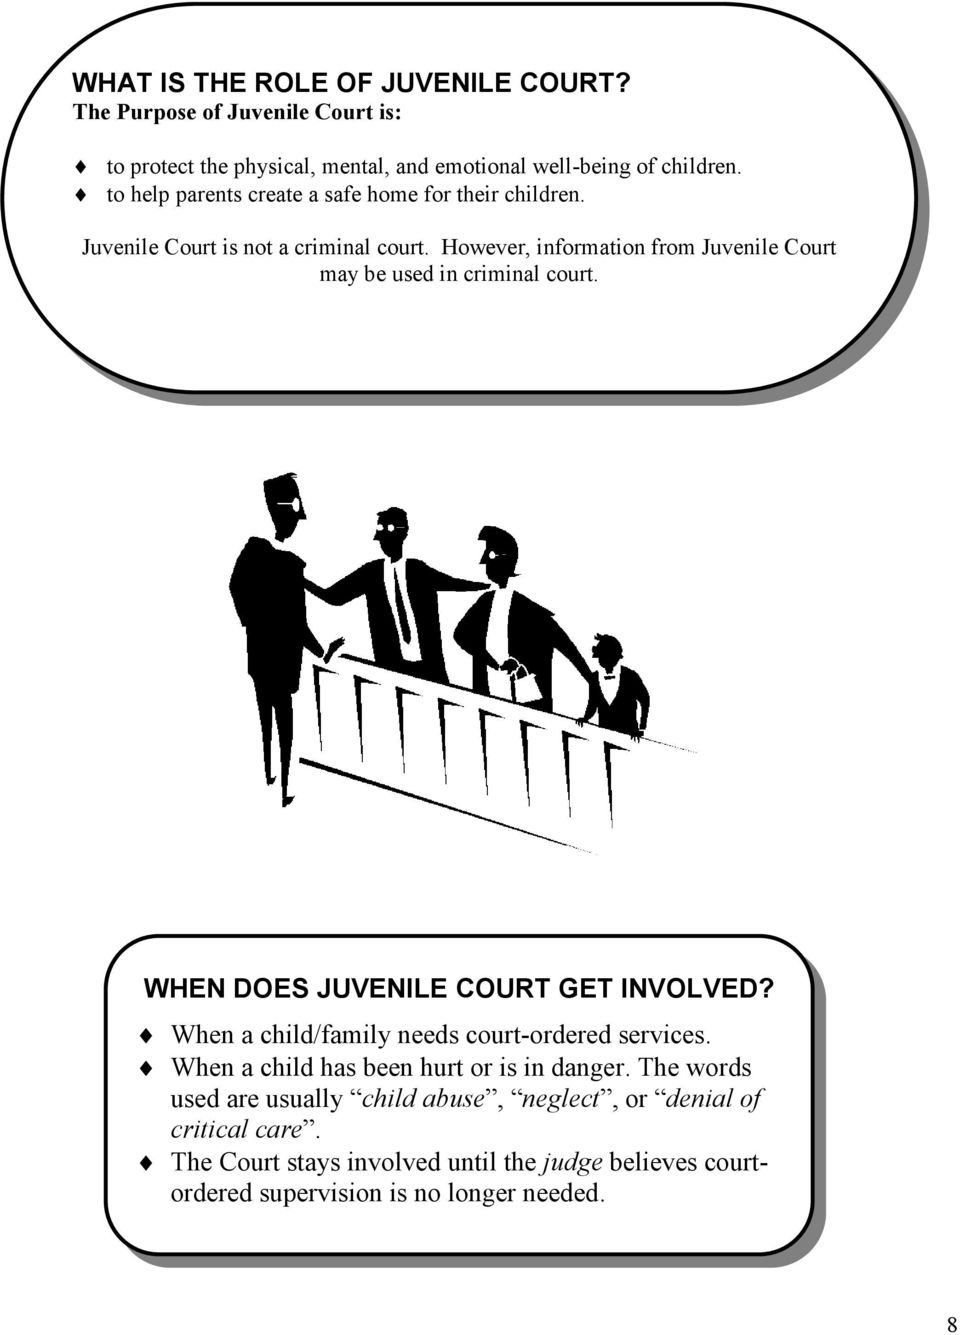 However, information from Juvenile Court may be used in criminal court. WHEN DOES JUVENILE COURT GET INVOLVED?